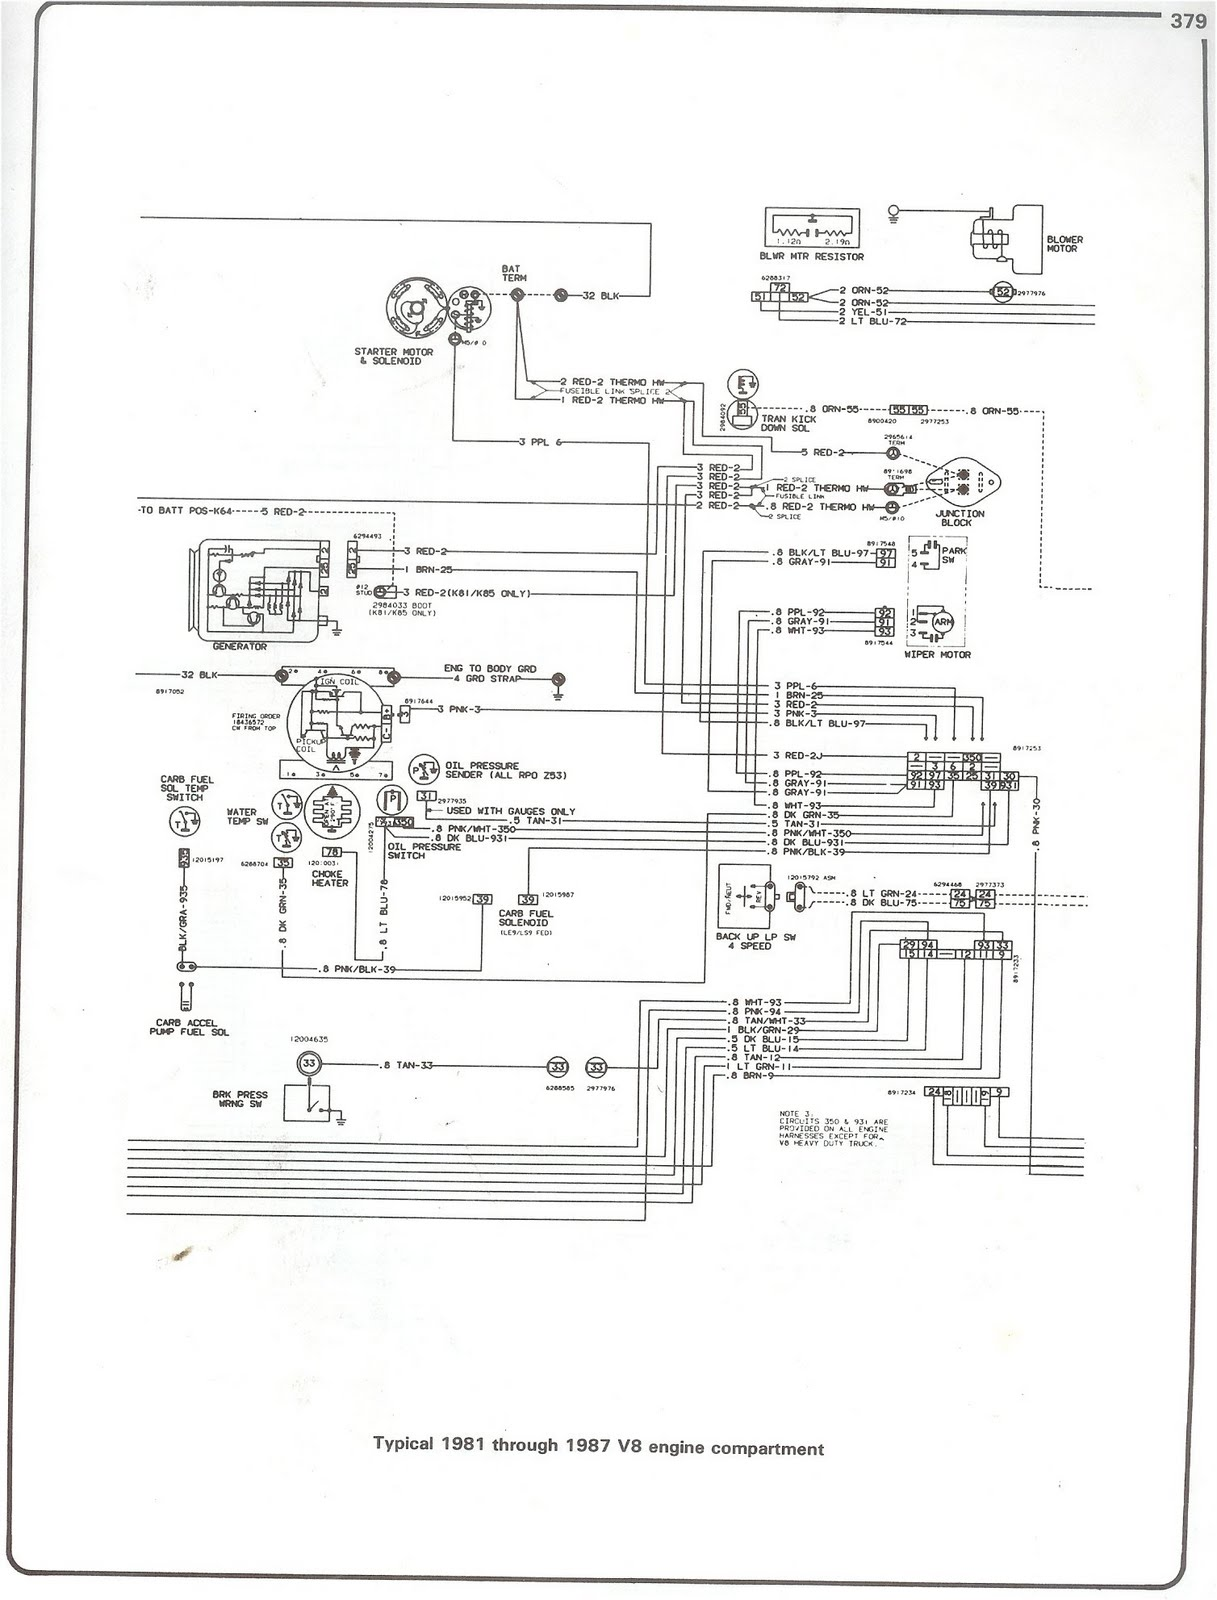 medium resolution of 76 chevy fuse box for wiring diagram weekwiring diagram on 76 chevy truck wiring diagram for